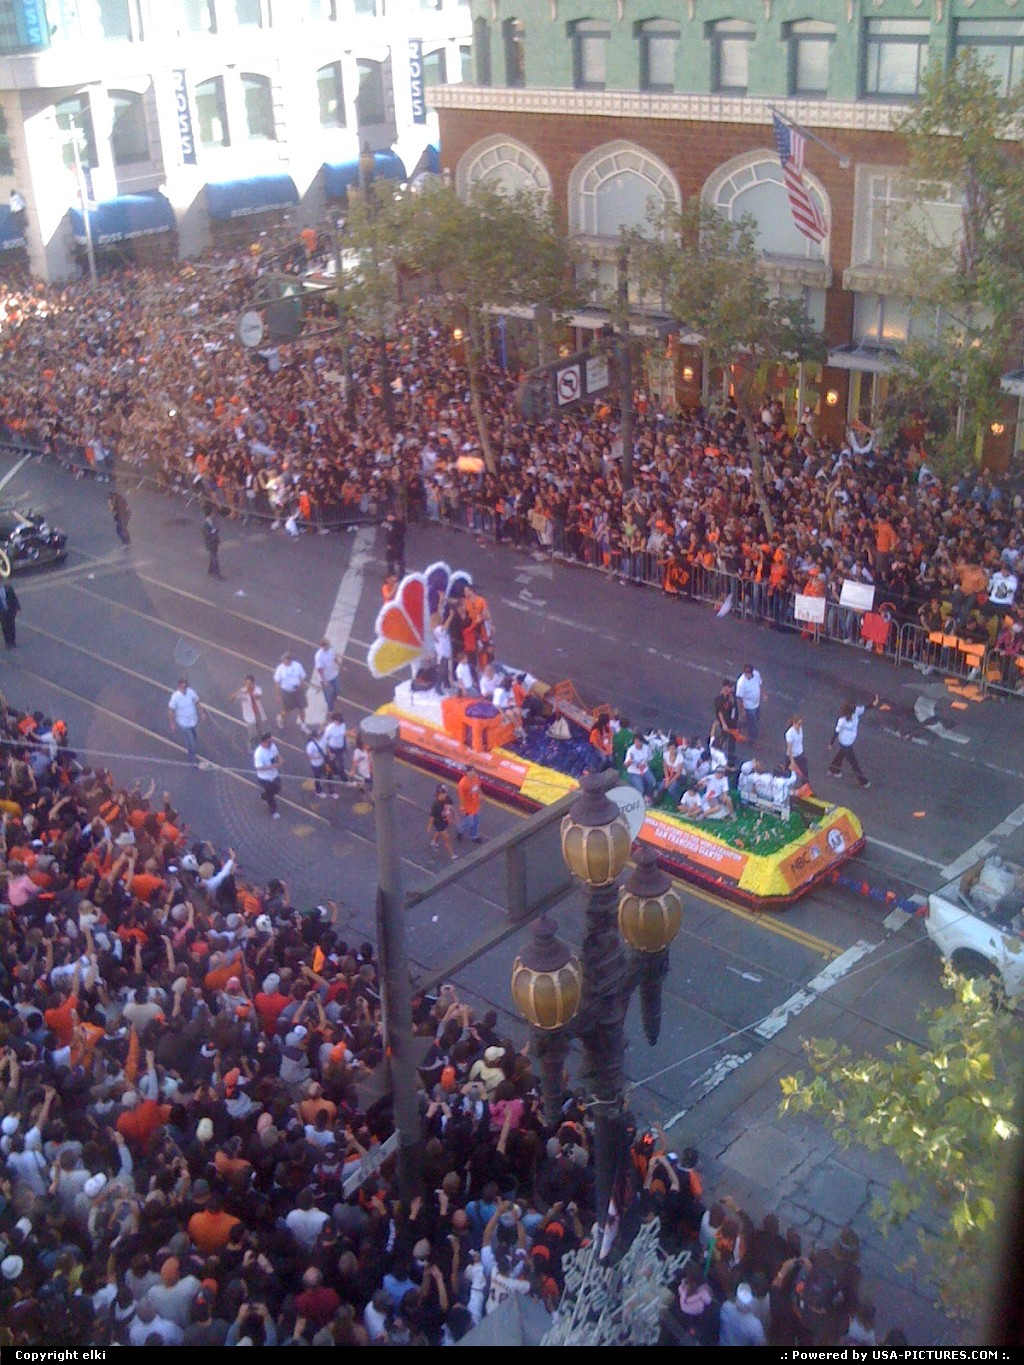 Picture by elki:San FranciscoCaliforniagiants parade